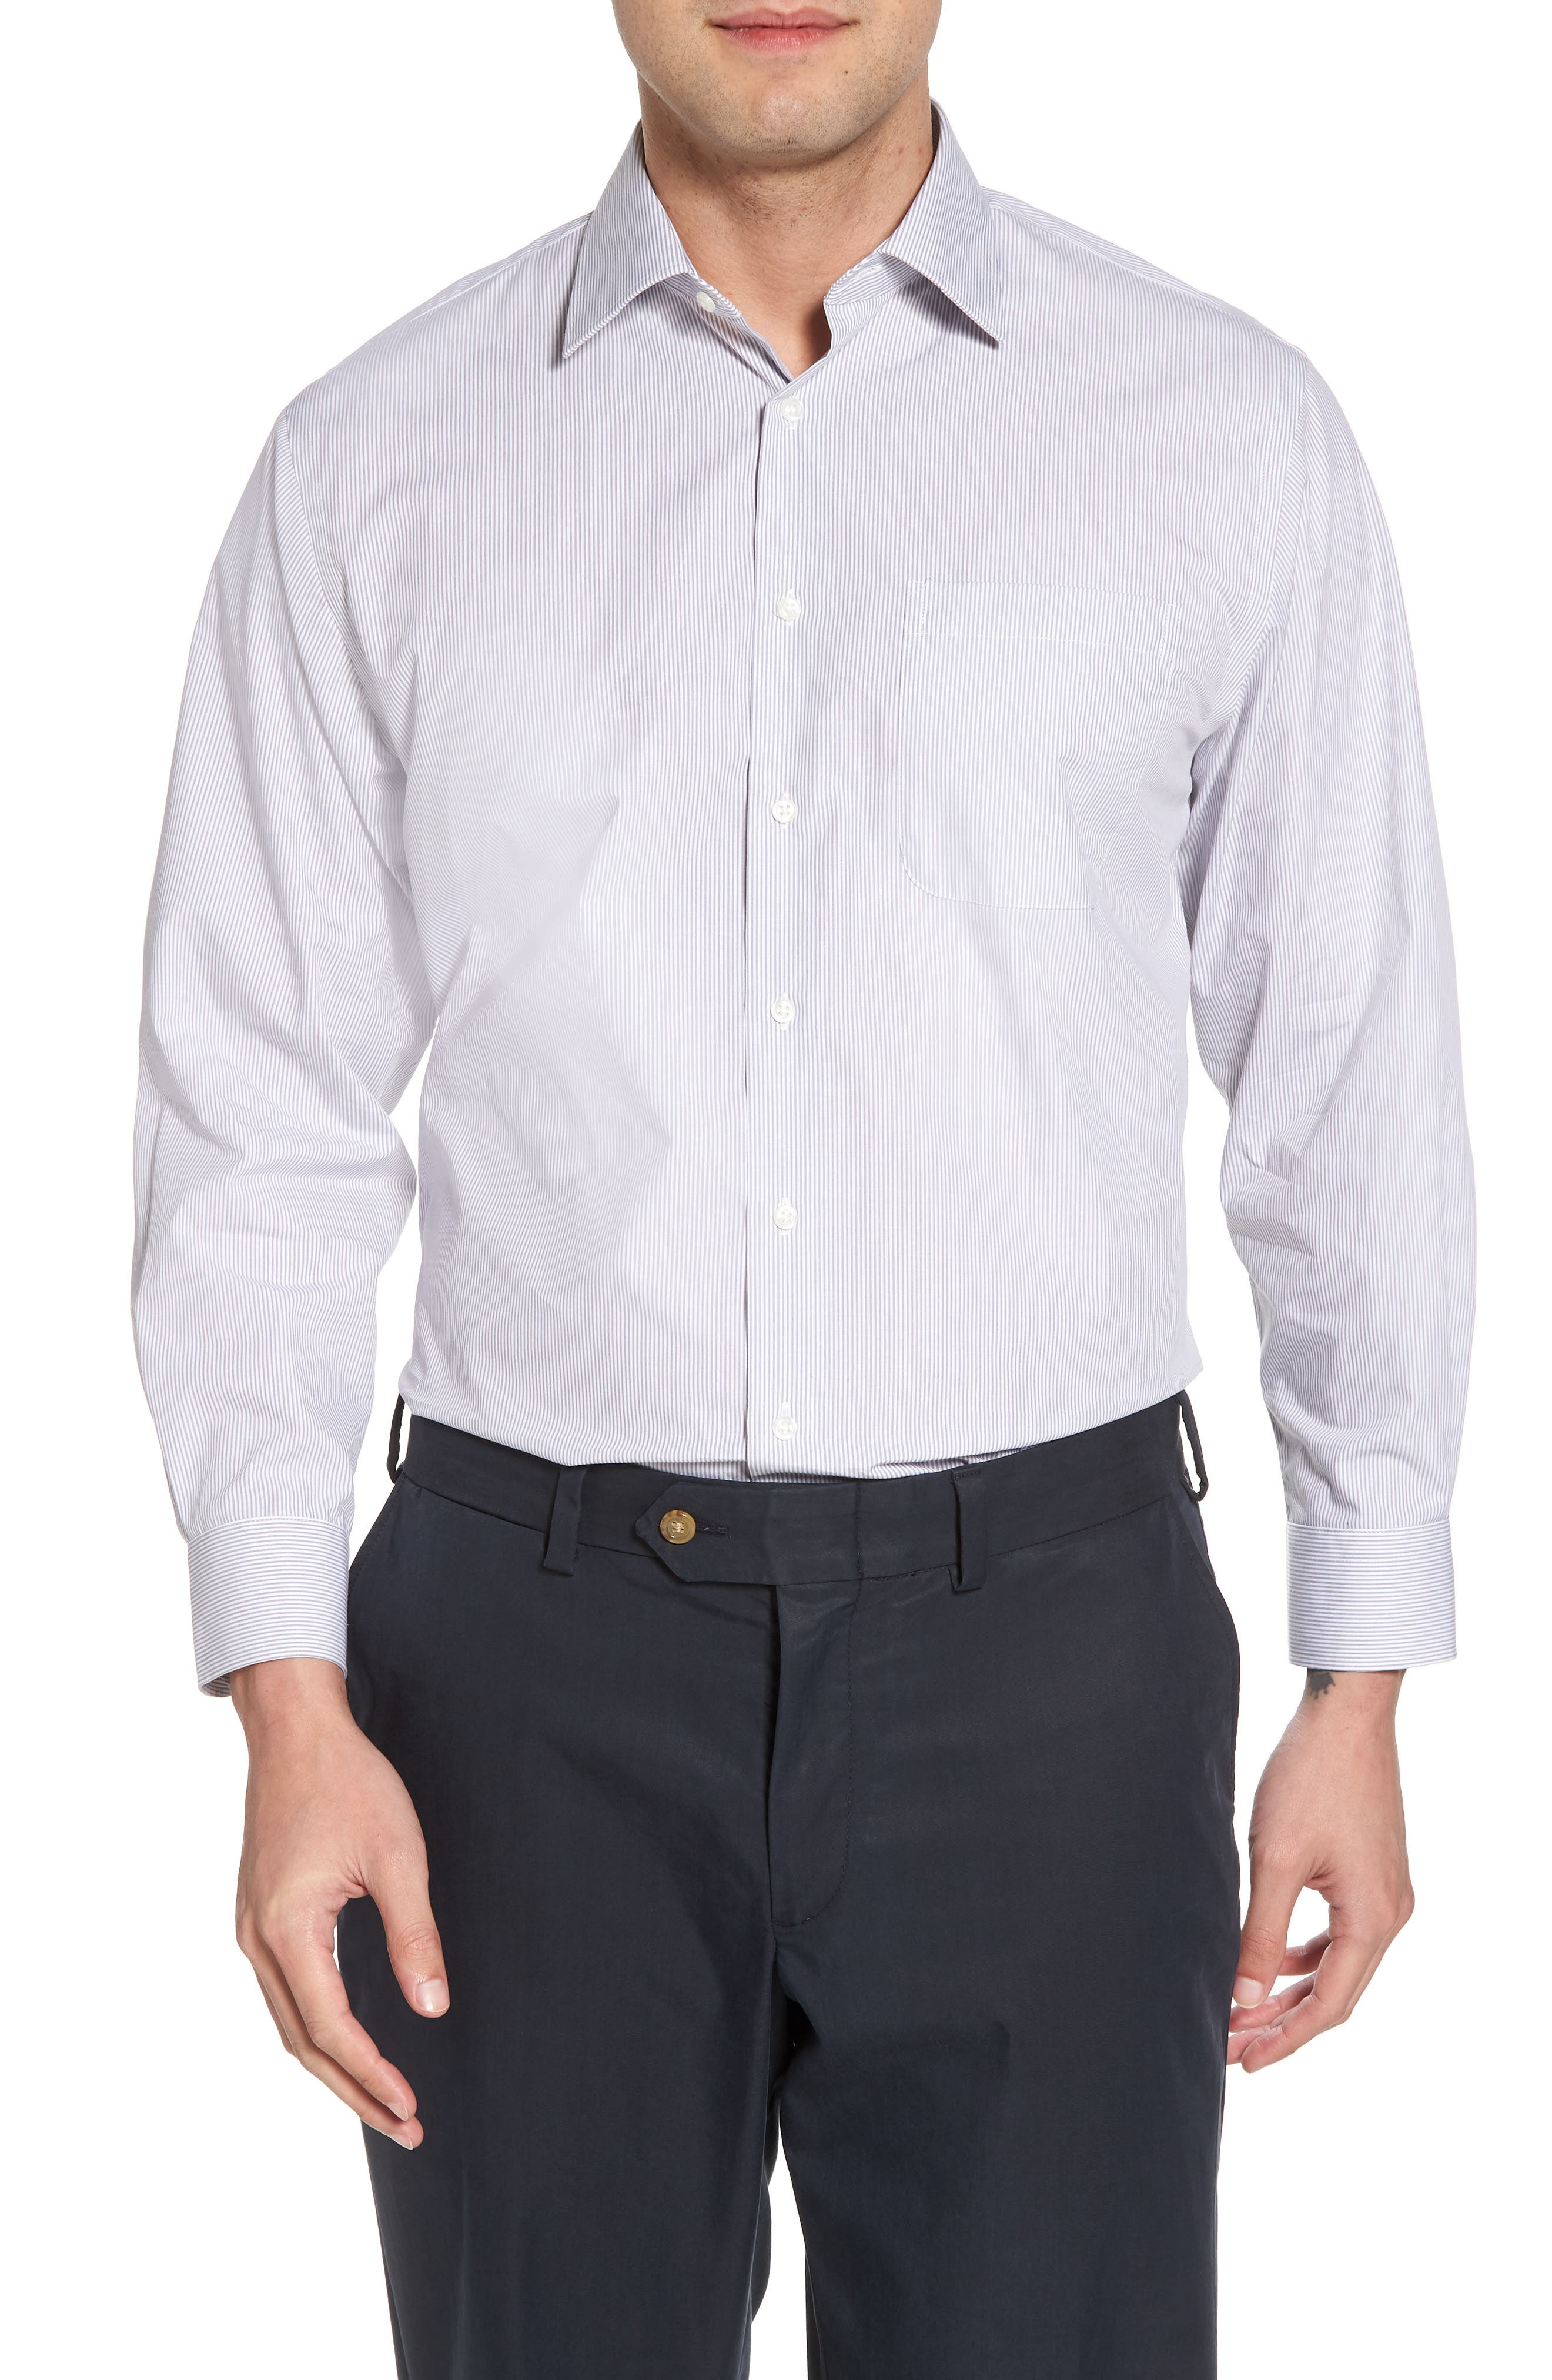 Smartcare<sup>™</sup> Traditional Fit Stripe Dress Shirt,                             Main thumbnail 1, color,                             051